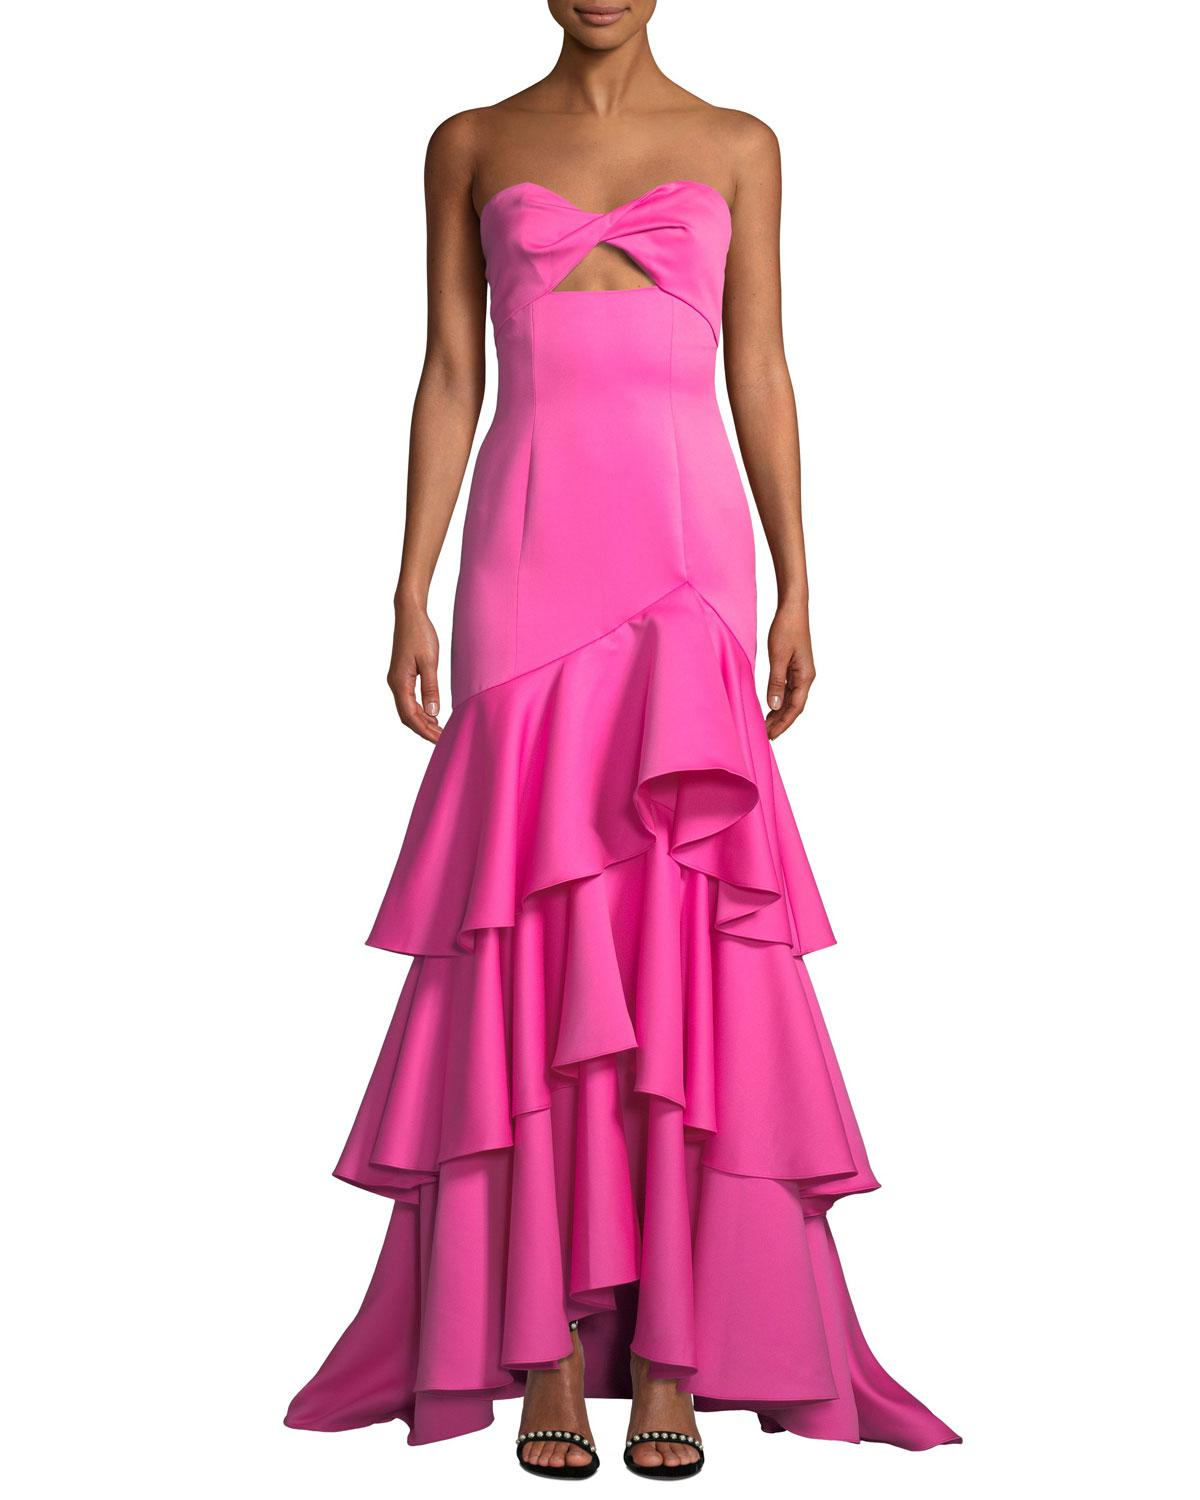 e3e94576cda3e Lyst - Jay Godfrey Harvey Strapless Ruffle Gown in Pink - Save 25%